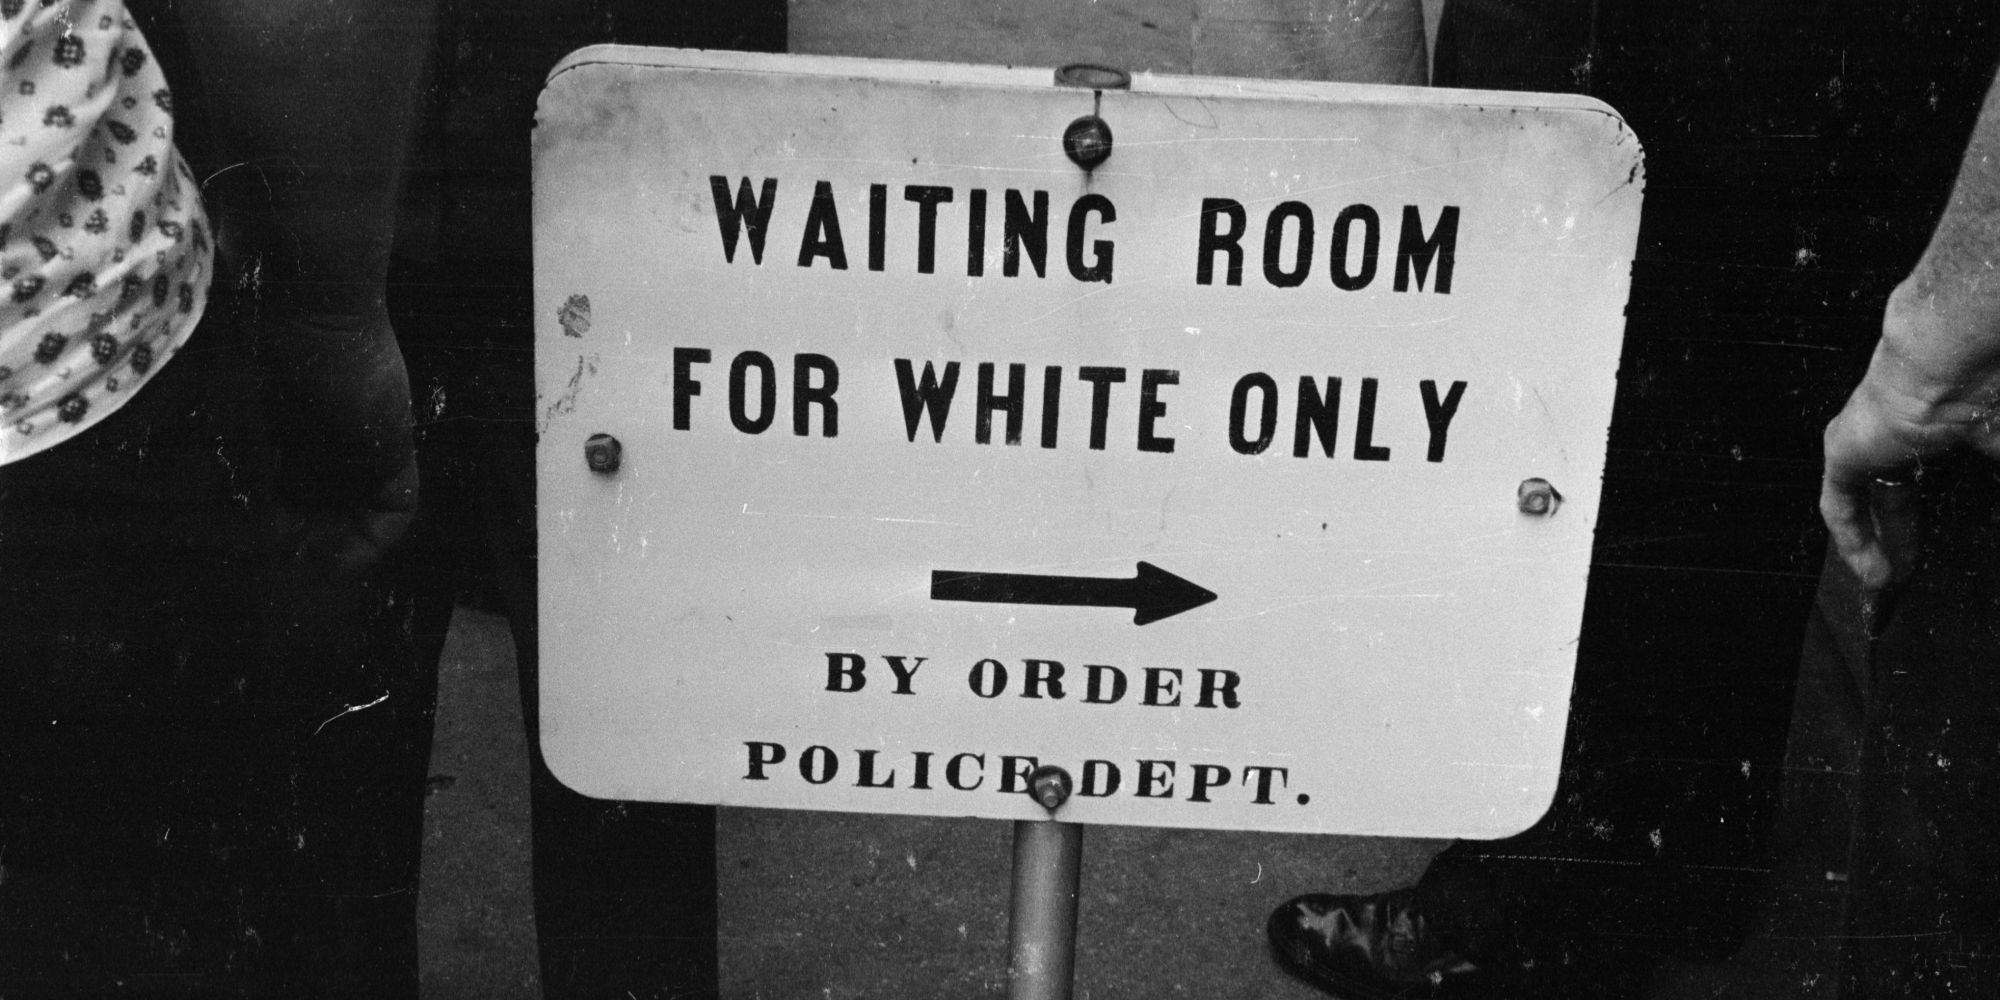 the theme of turmoil of both whites and blacks over the white segregation policy apartheid in cry th